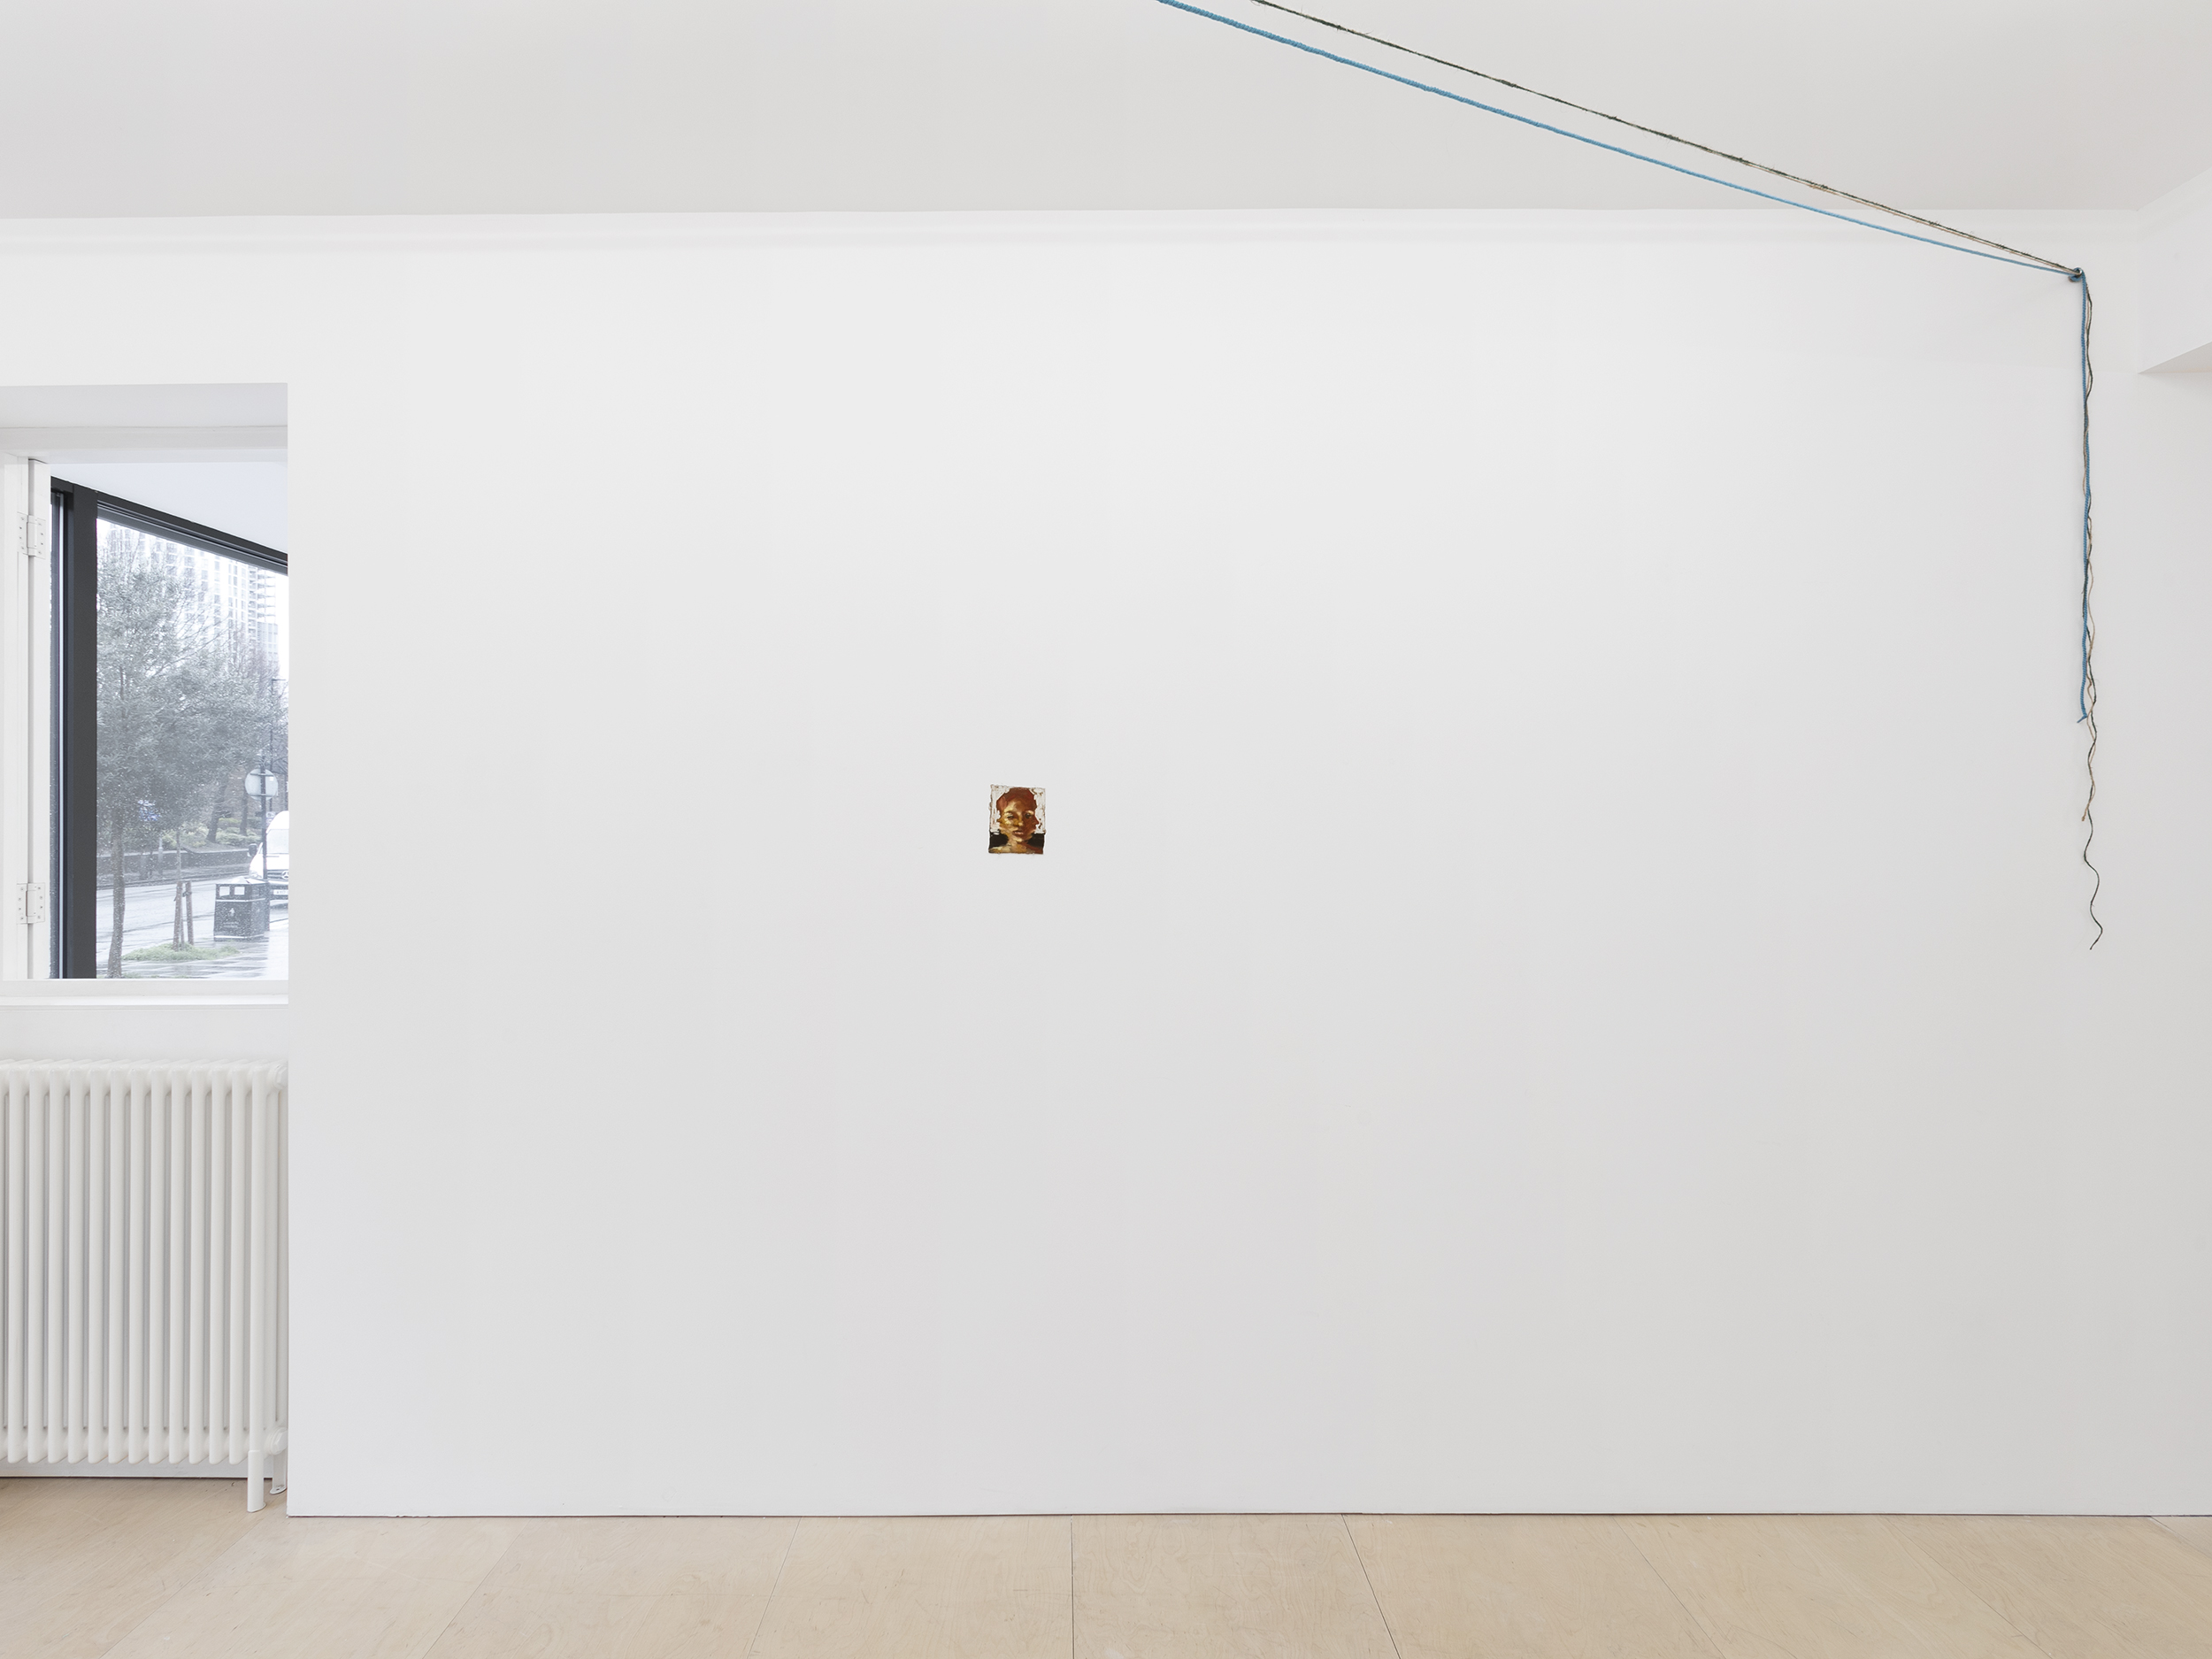 Installation view, A Grain Of Sand, The Sunday Painter, 2021. Images Courtesy of the Gallery